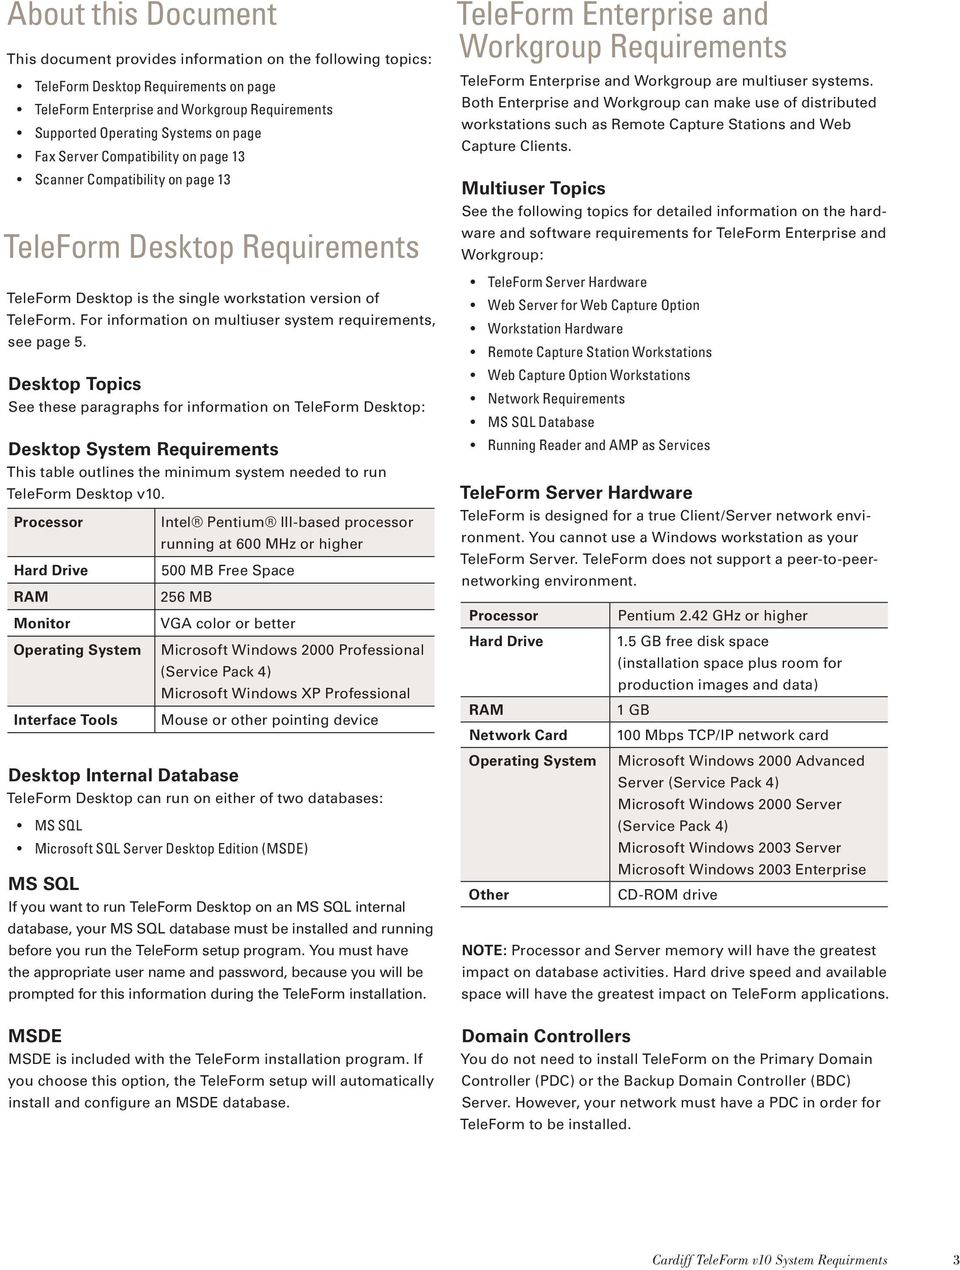 For information on multiuser system requirements, see page 5.